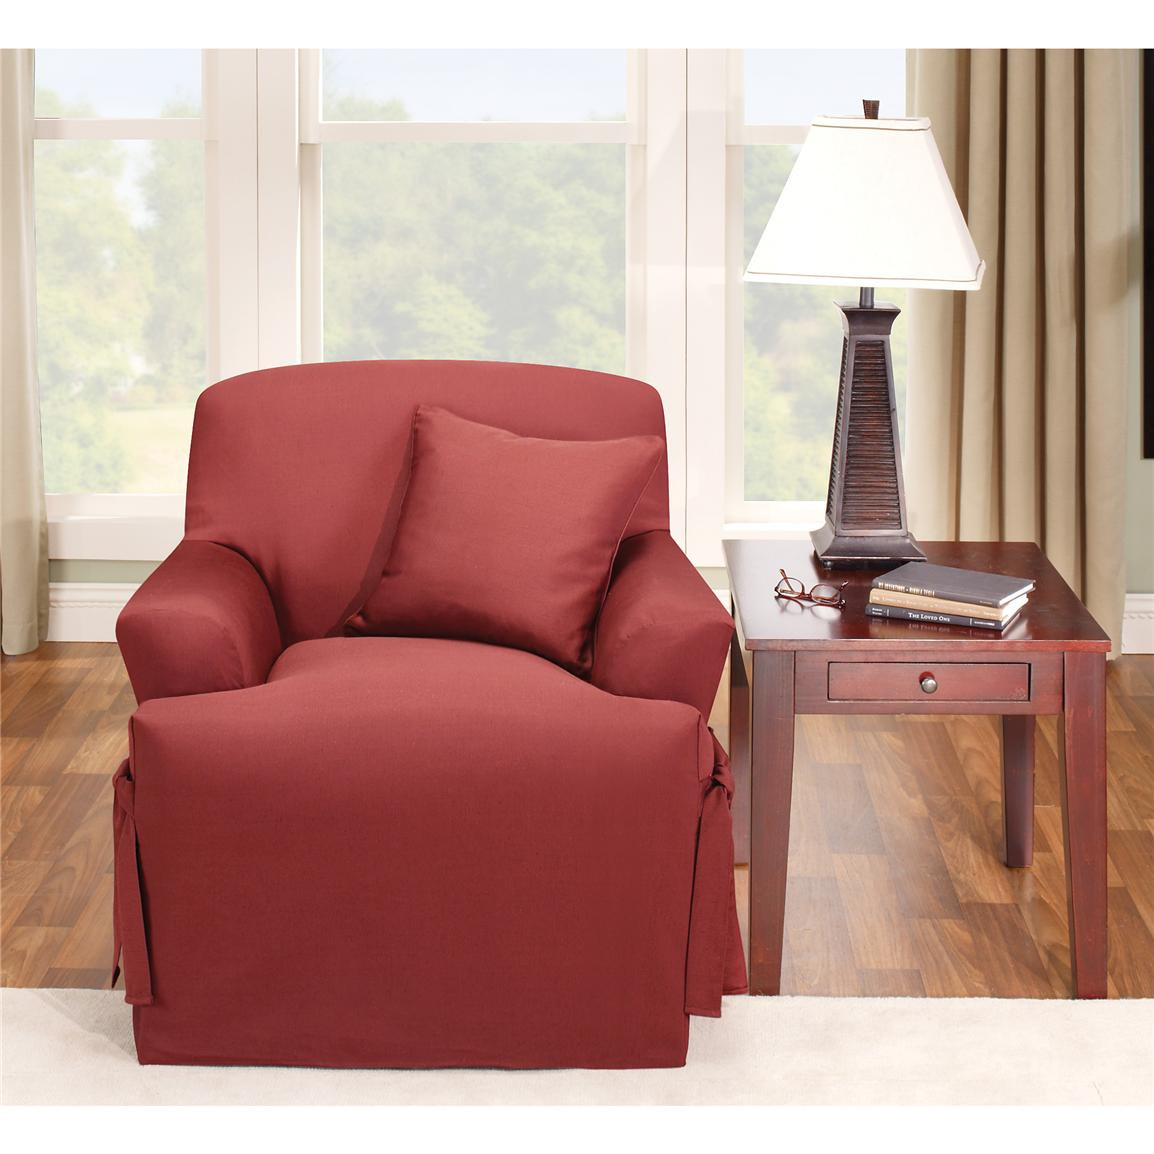 Best ideas about Sure Fit Chair Covers . Save or Pin Sure Fit Logan T cushion Chair Slipcover Now.